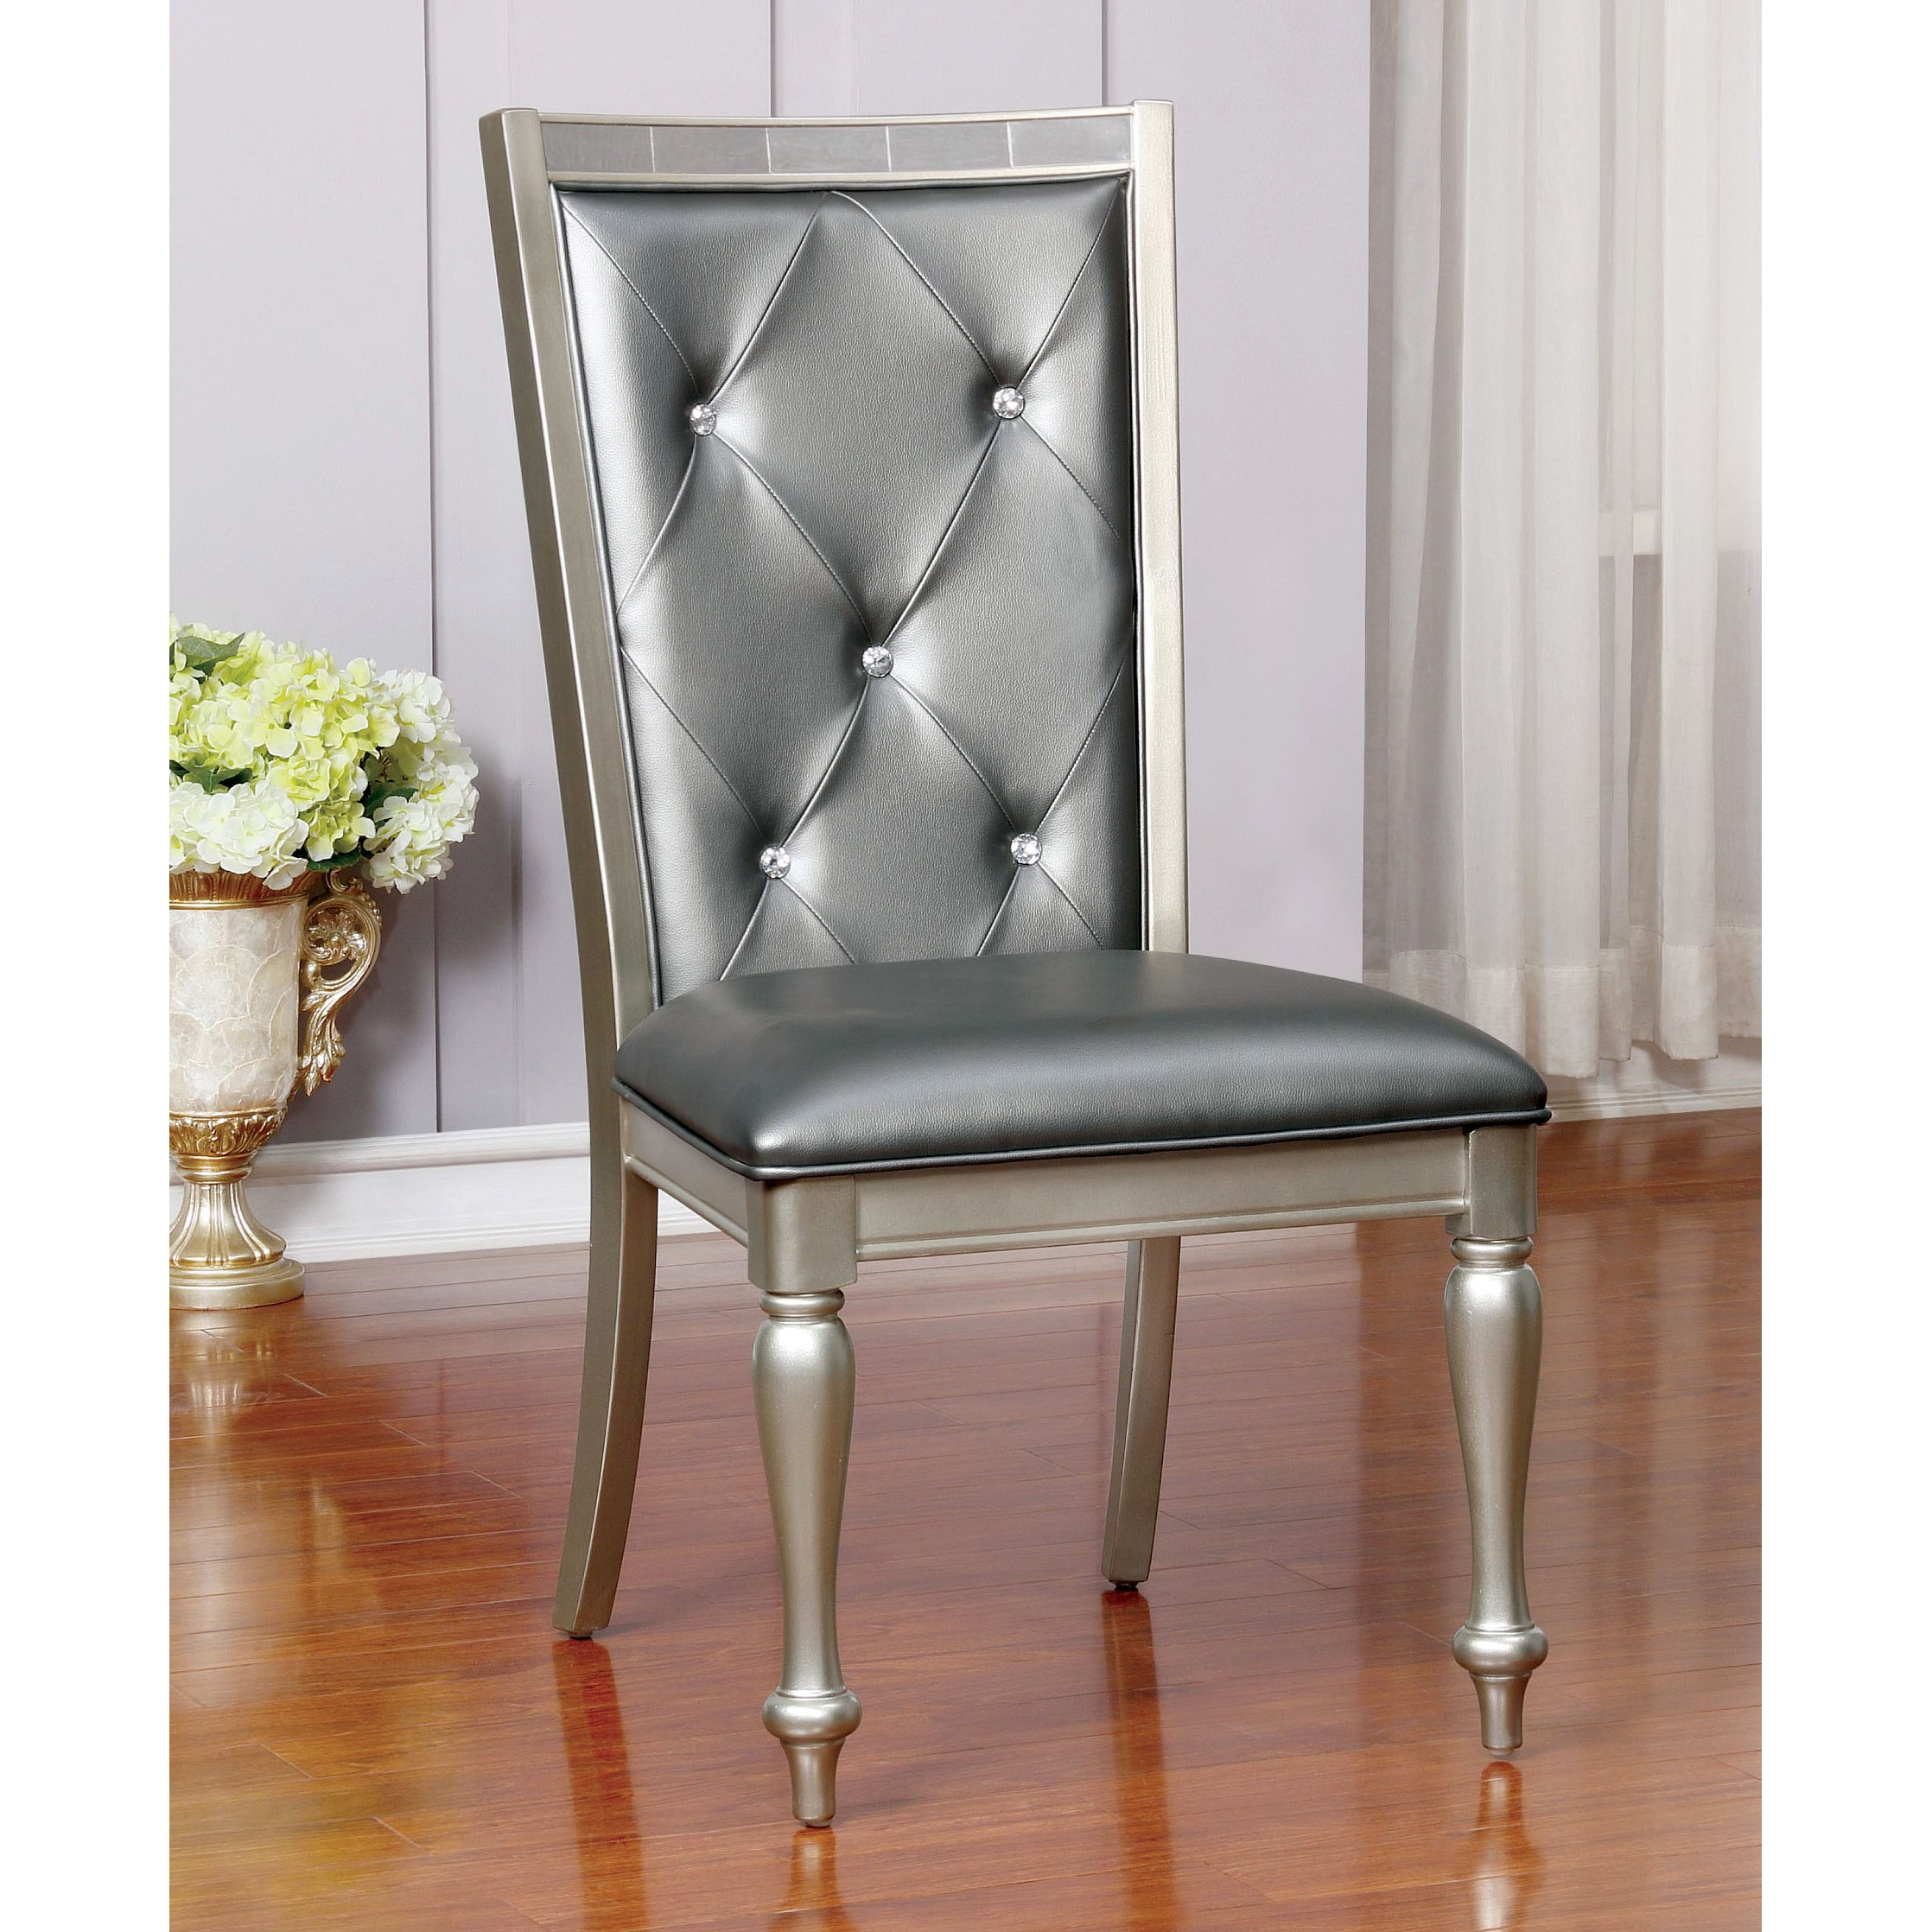 Silver Dining Chairs Glendel Contemporary Silver Grey Dining Chairs Set Of 2 By Foa